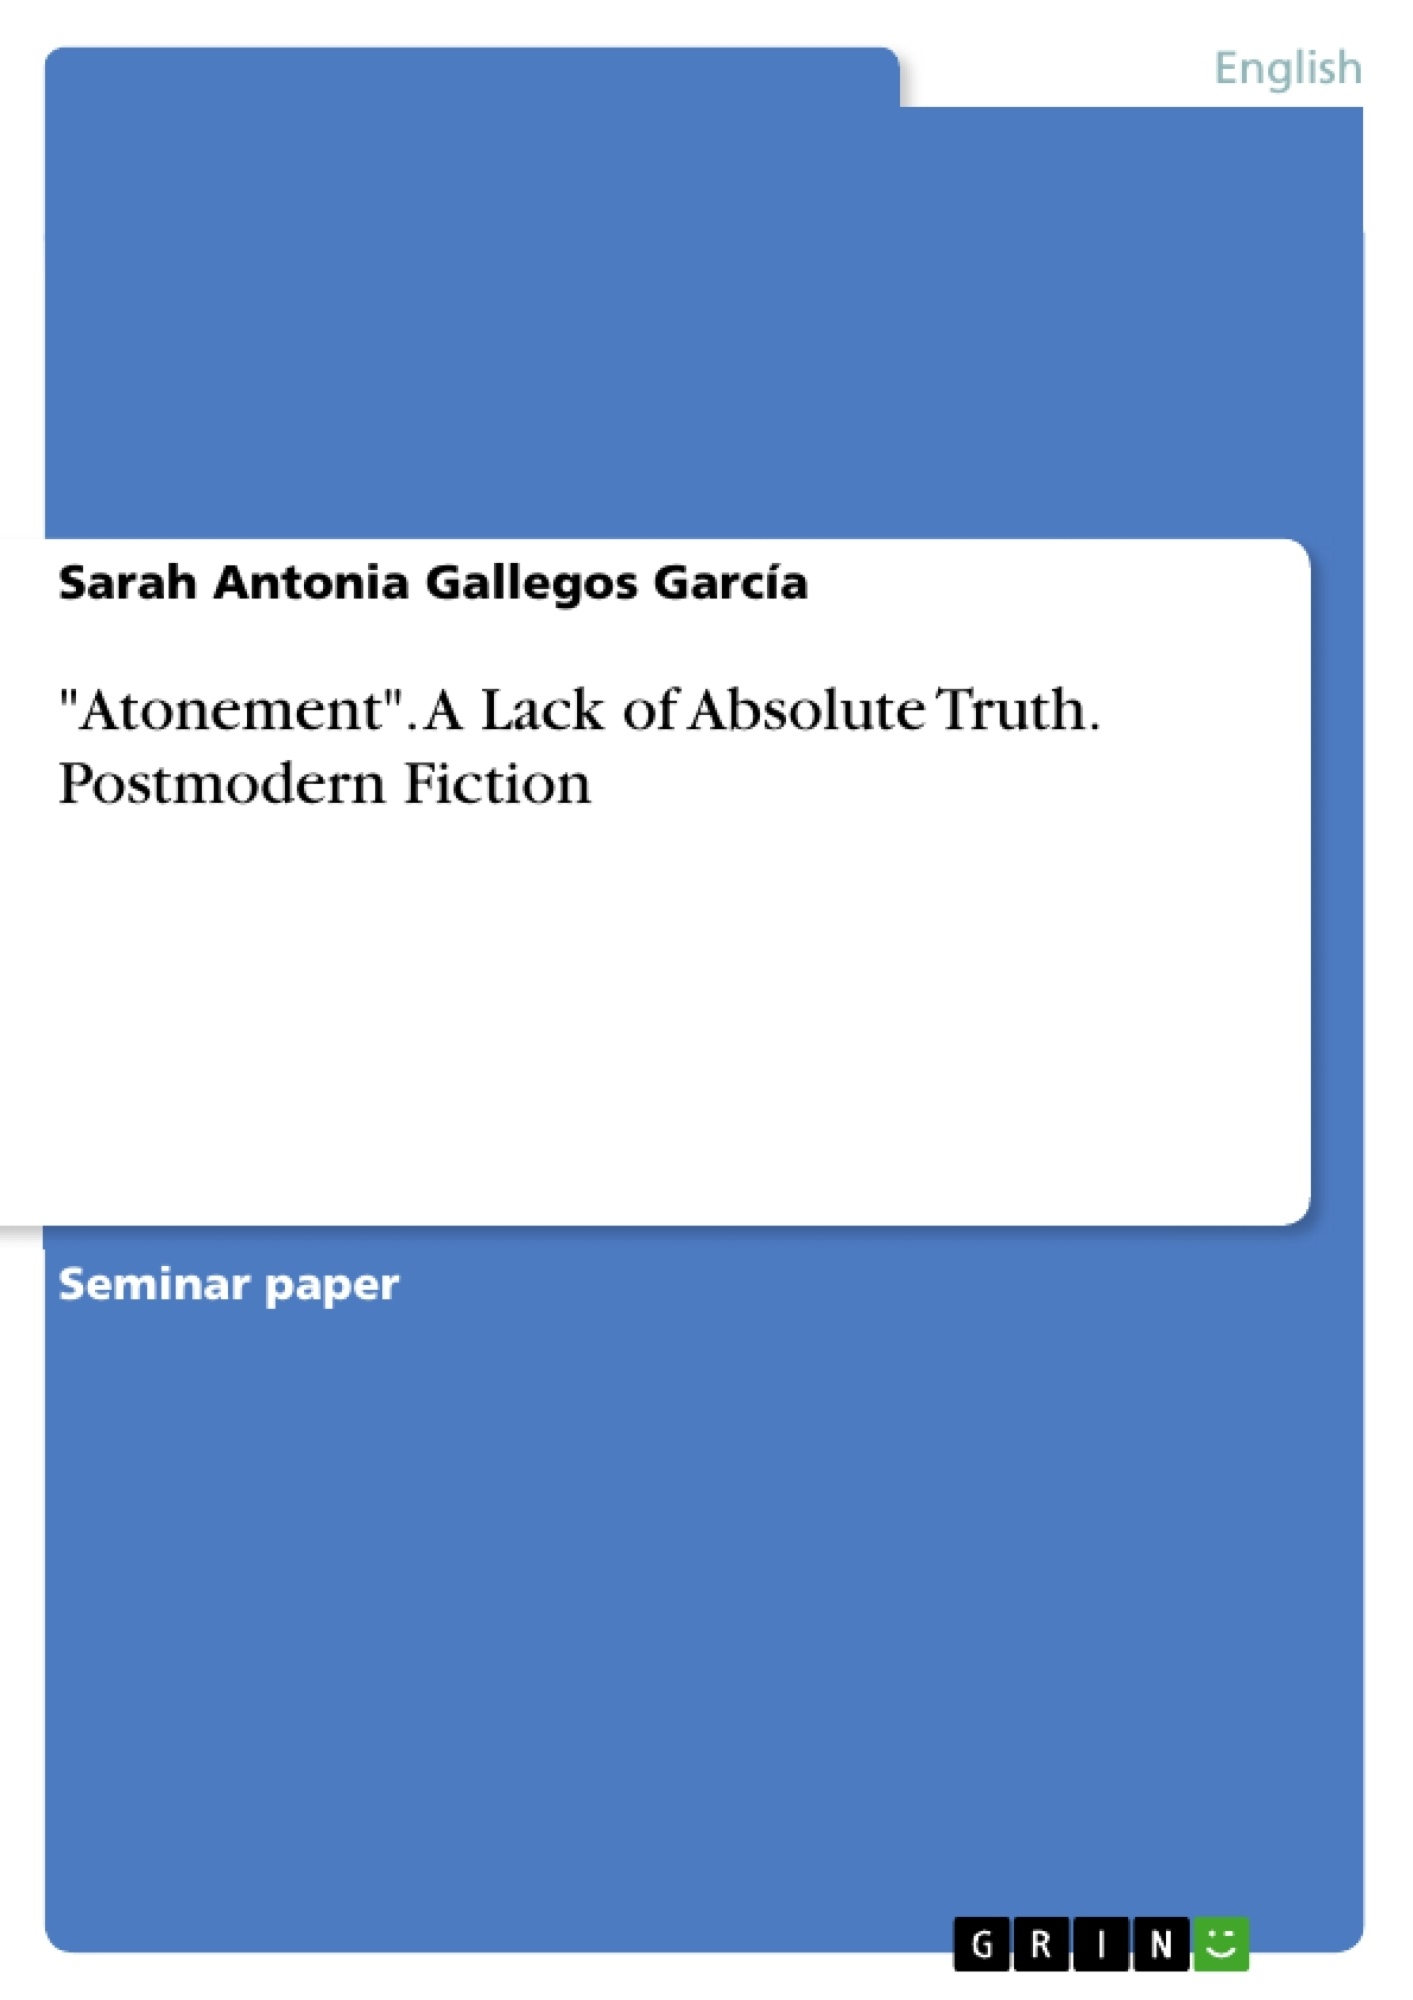 """Title: """"Atonement"""". A Lack of Absolute Truth. Postmodern Fiction"""